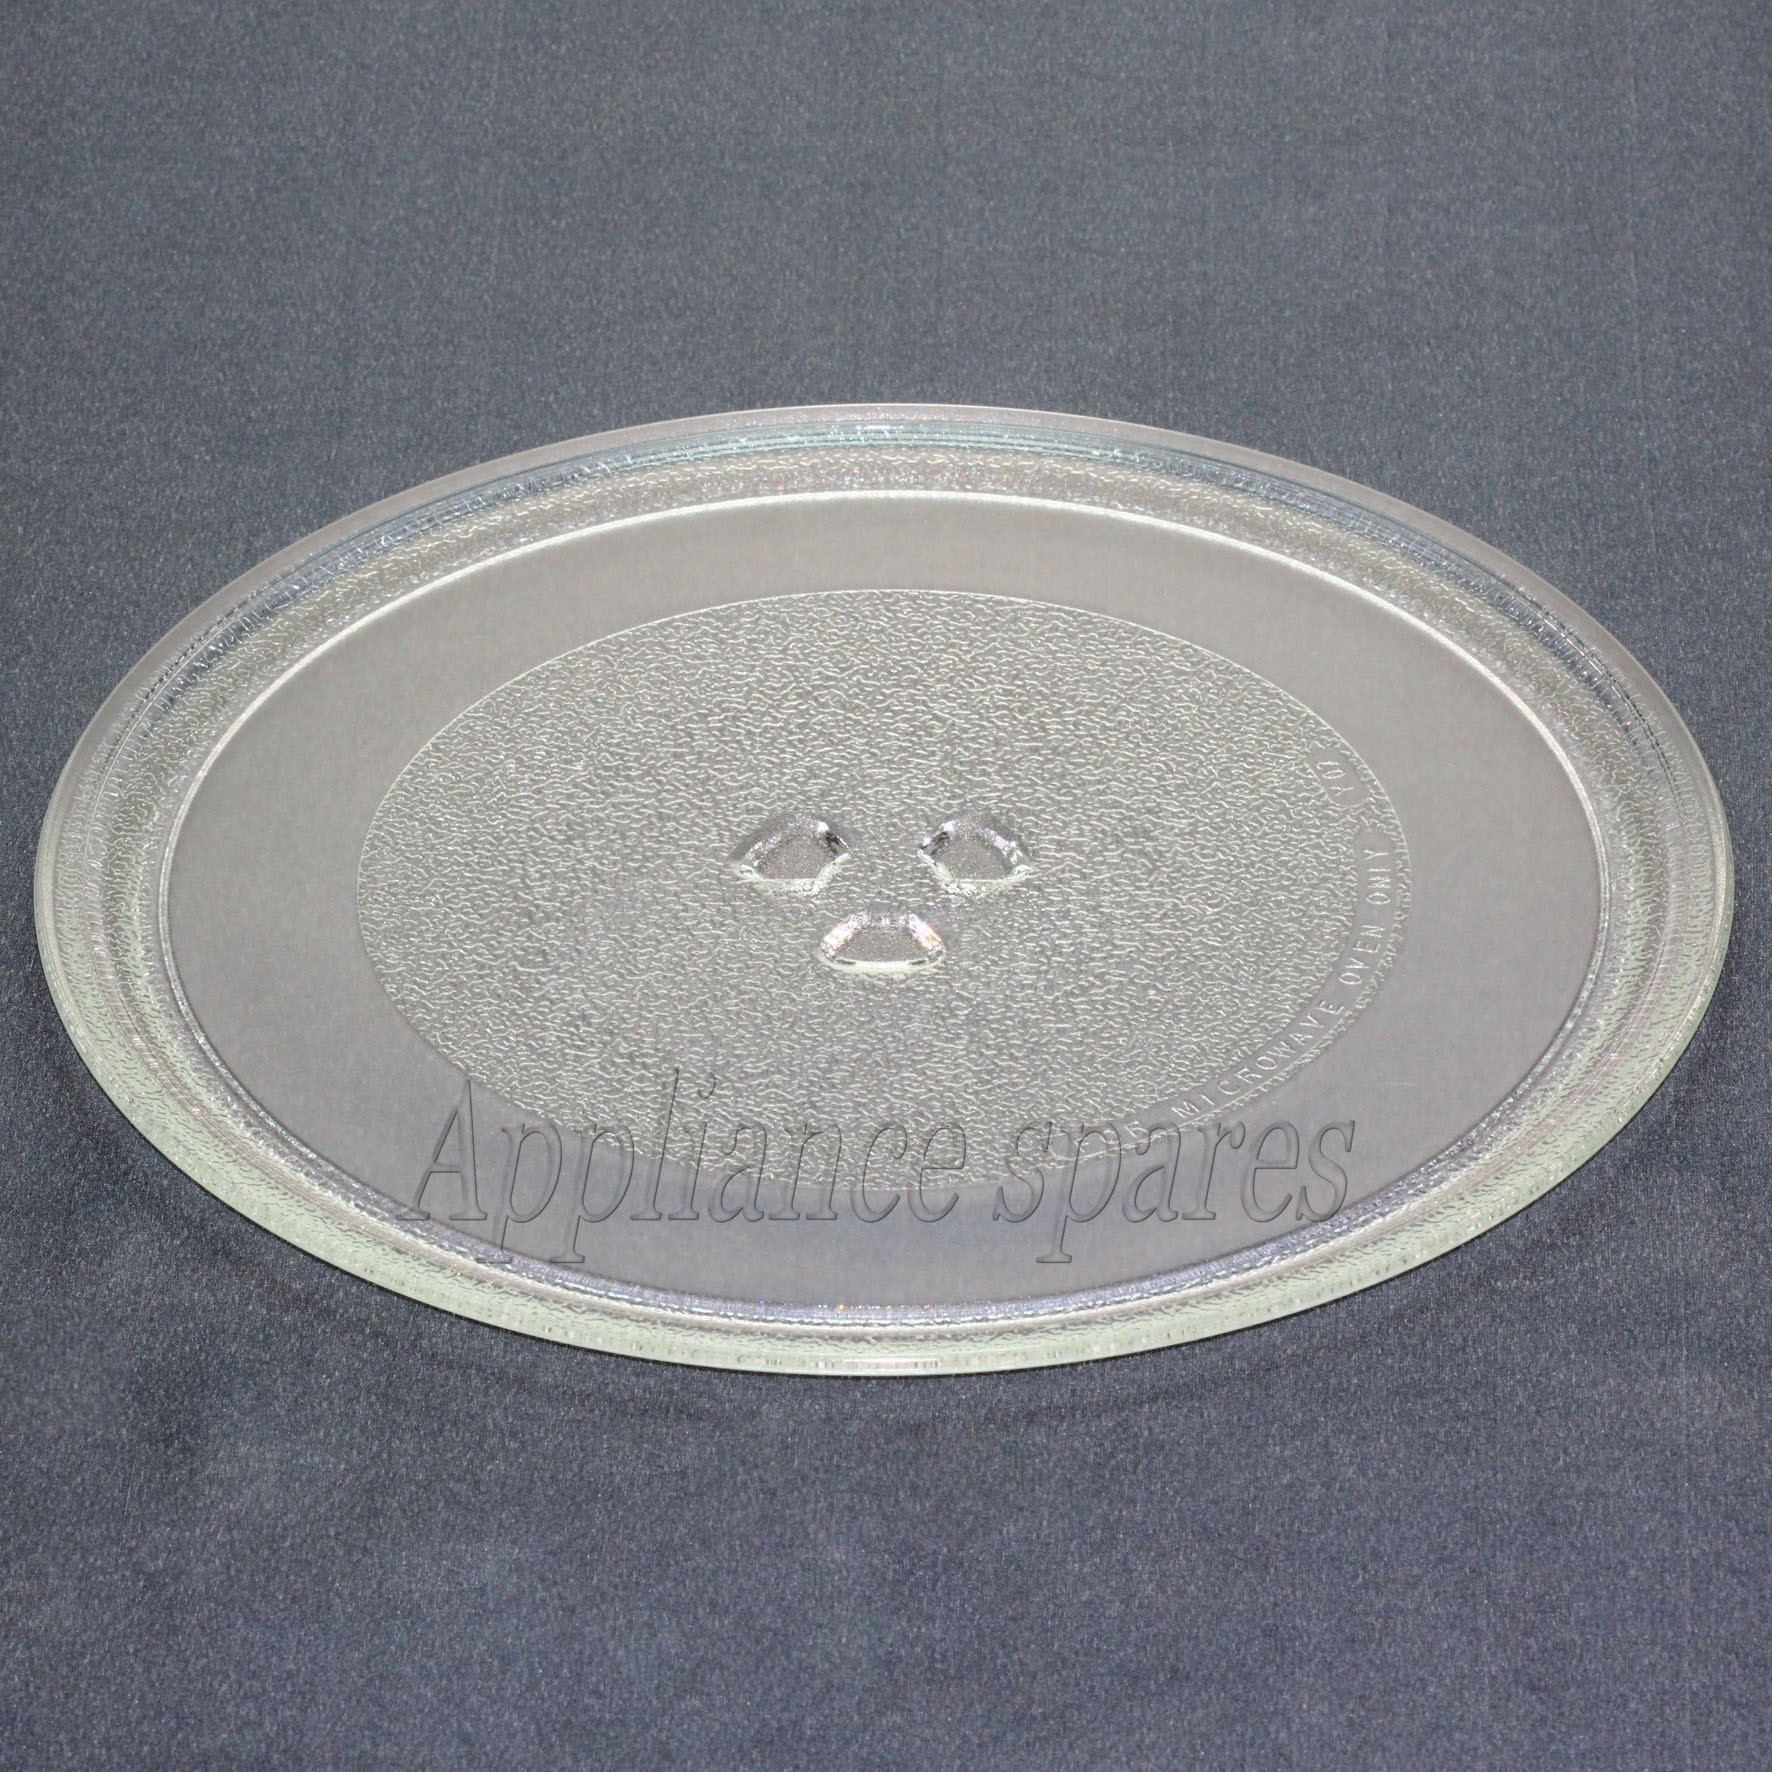 Lg Microwave Oven Glass Plate 28 4cm Lategan And Van